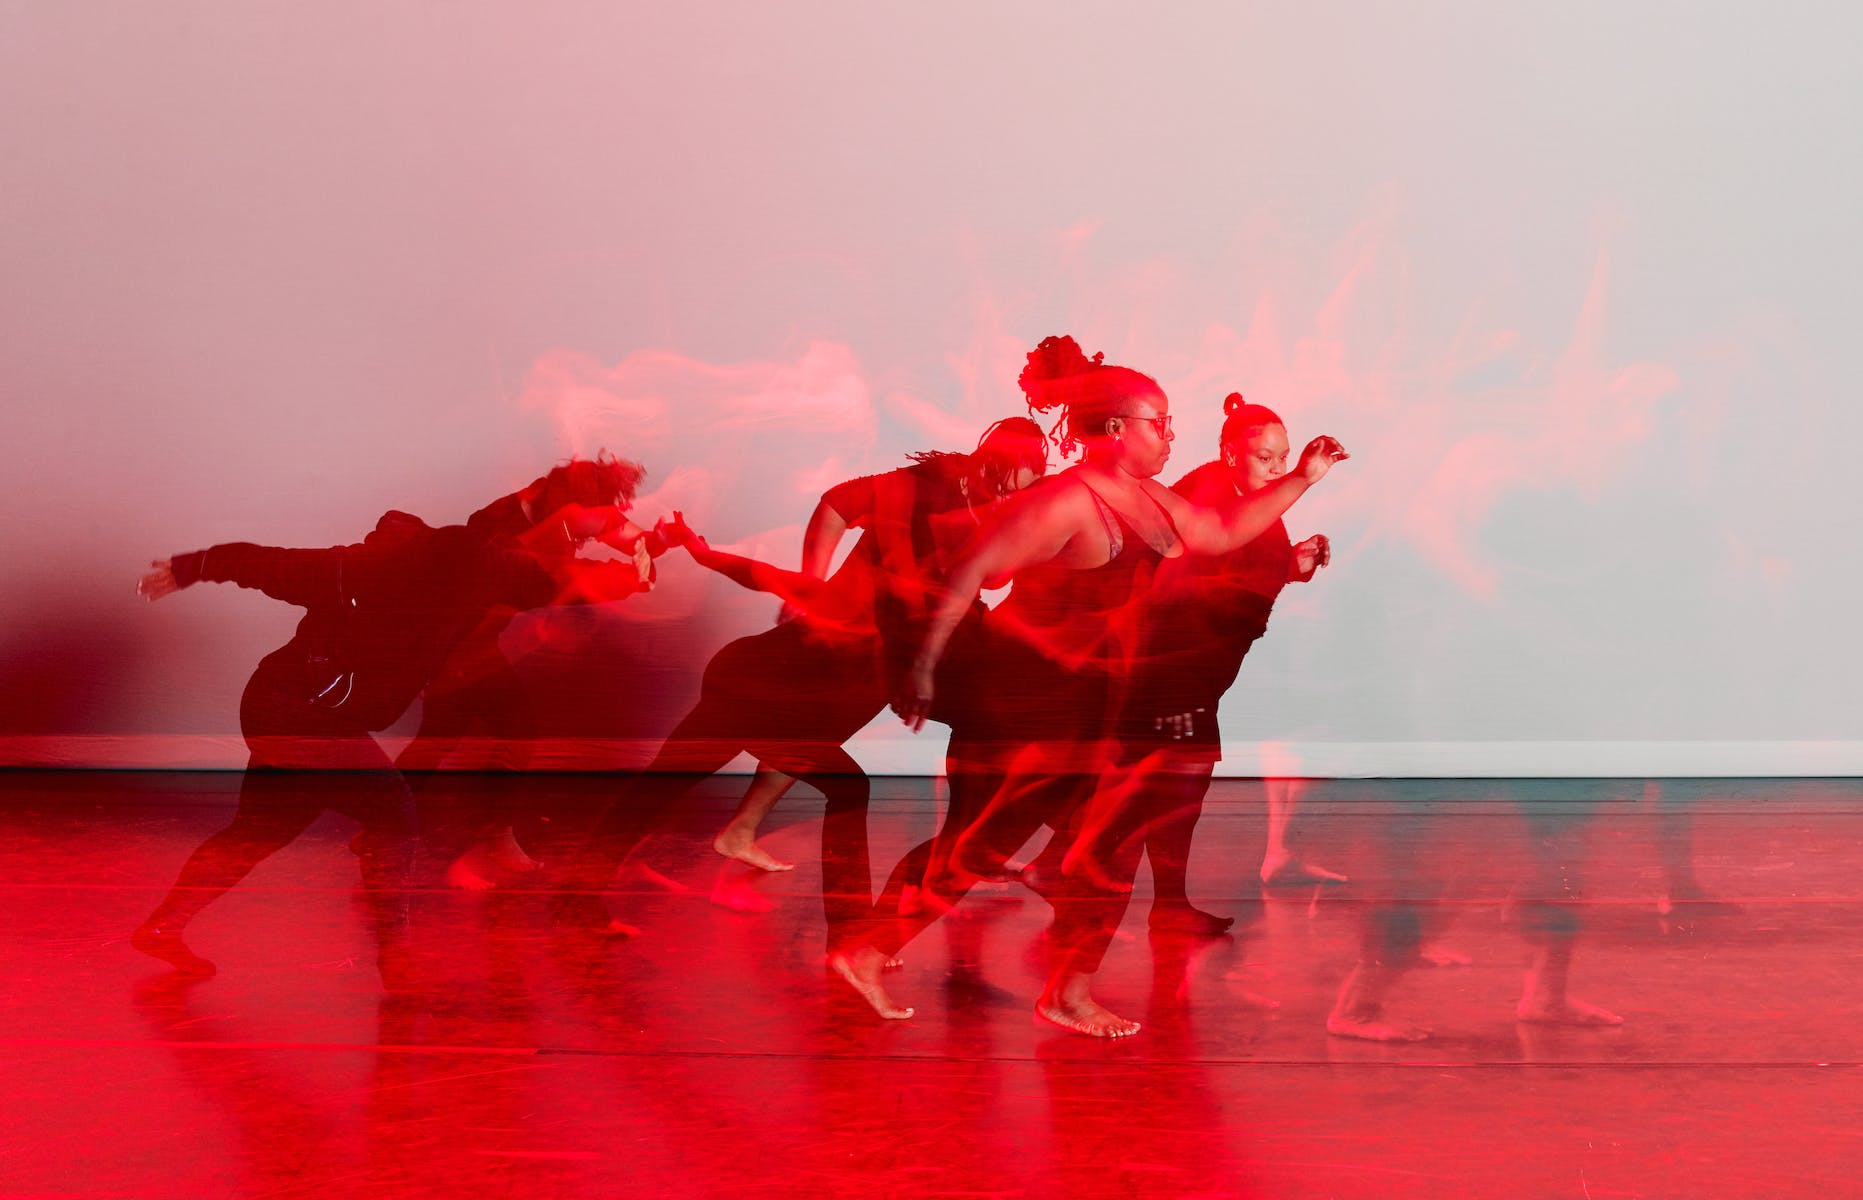 Black and red image of dancers on stage.